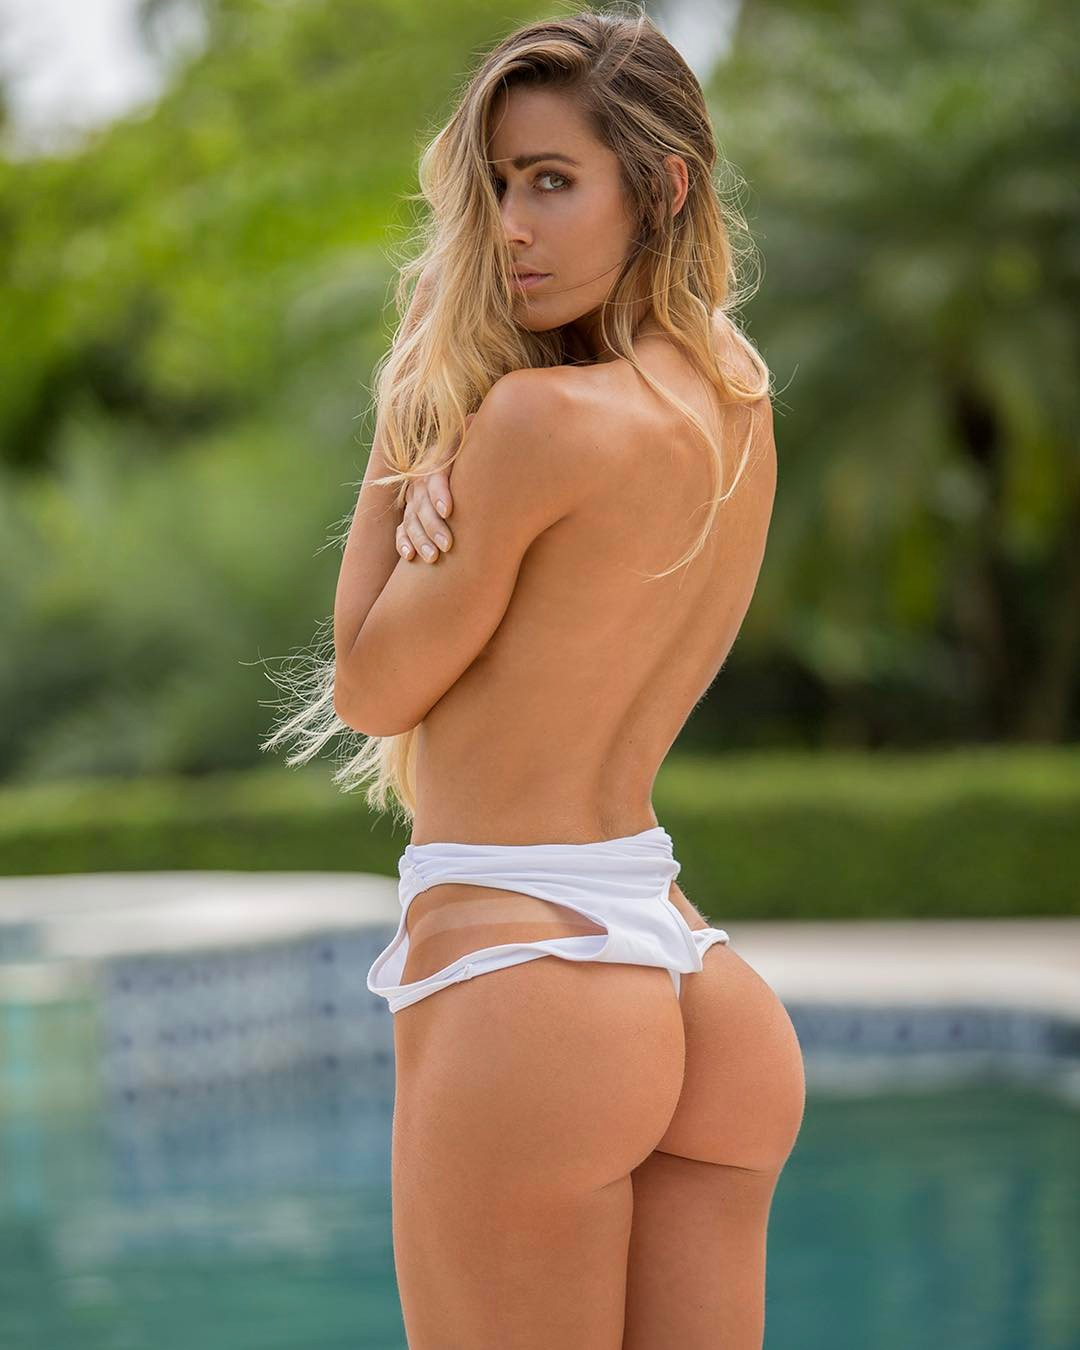 The Goddess of the day: Valentina Lequeux